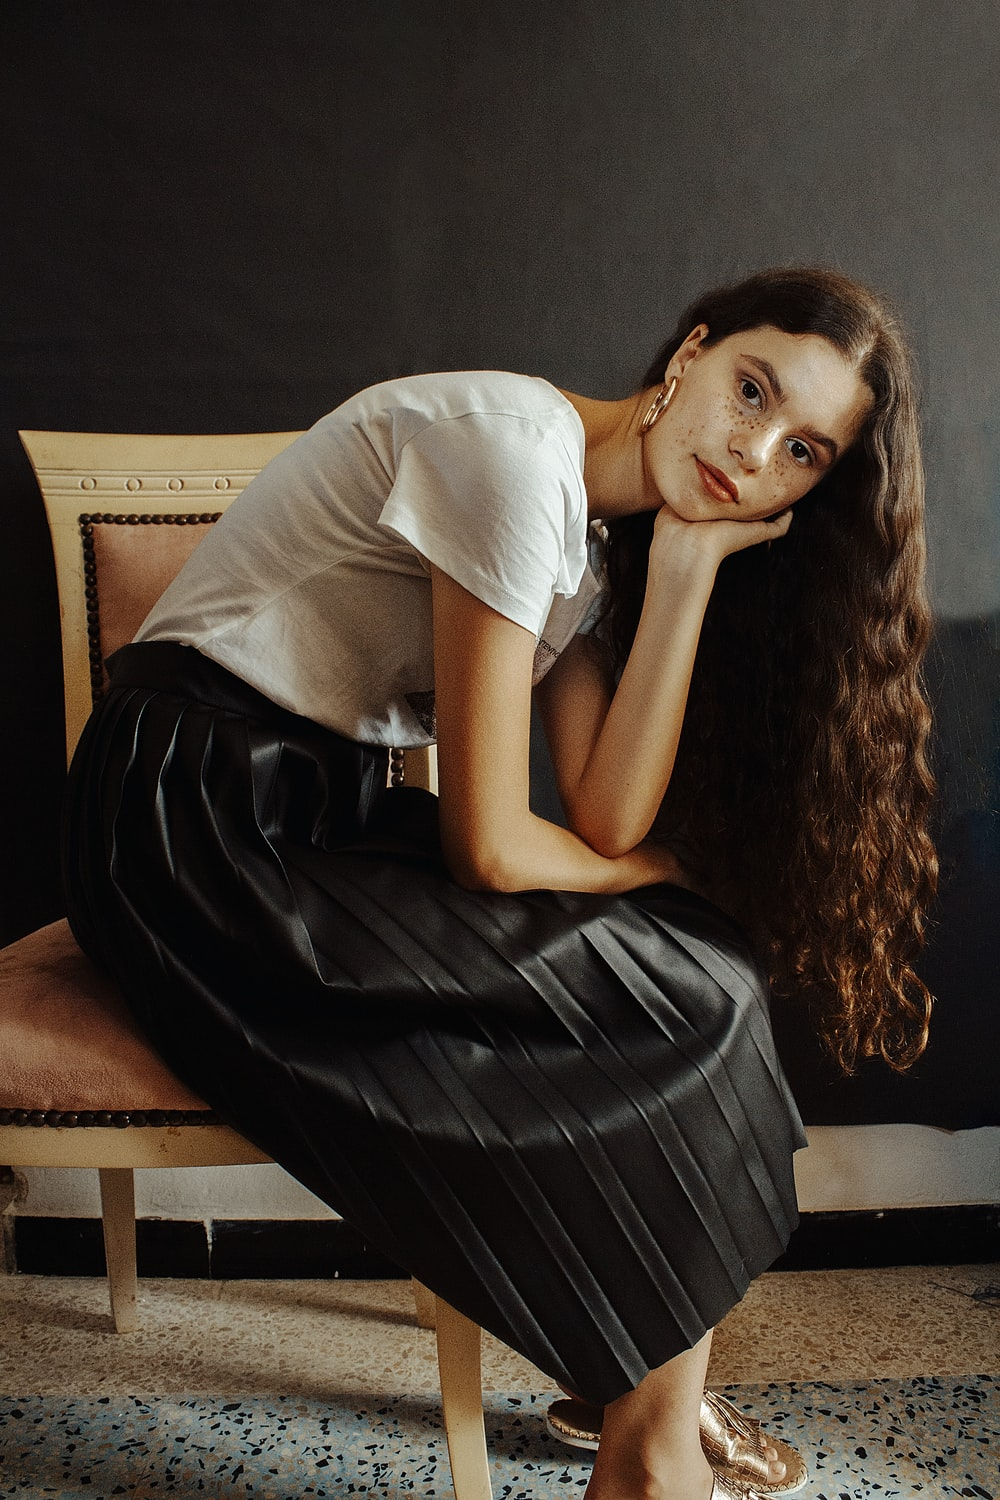 woman in white shirt and black skirt sitting on brown sofa